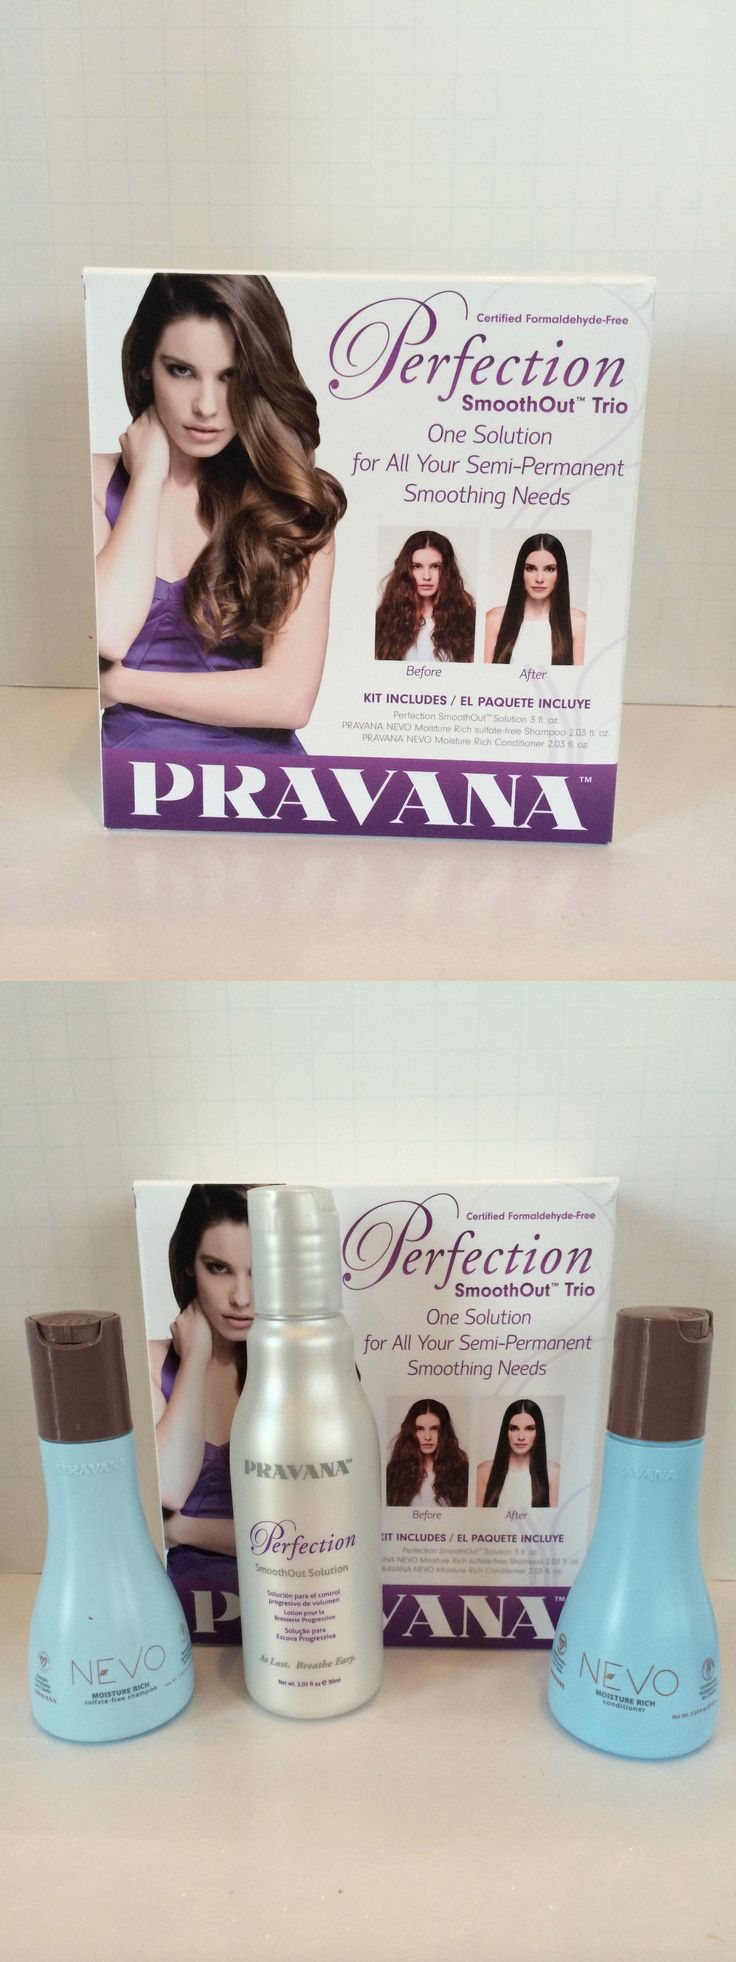 Relaxers and Straightening Prod: Pravana Perfection Smoothout Trio - Shampoo, Conditioner And Smooth Out Solution -> BUY IT NOW ONLY: $47.47 on eBay!